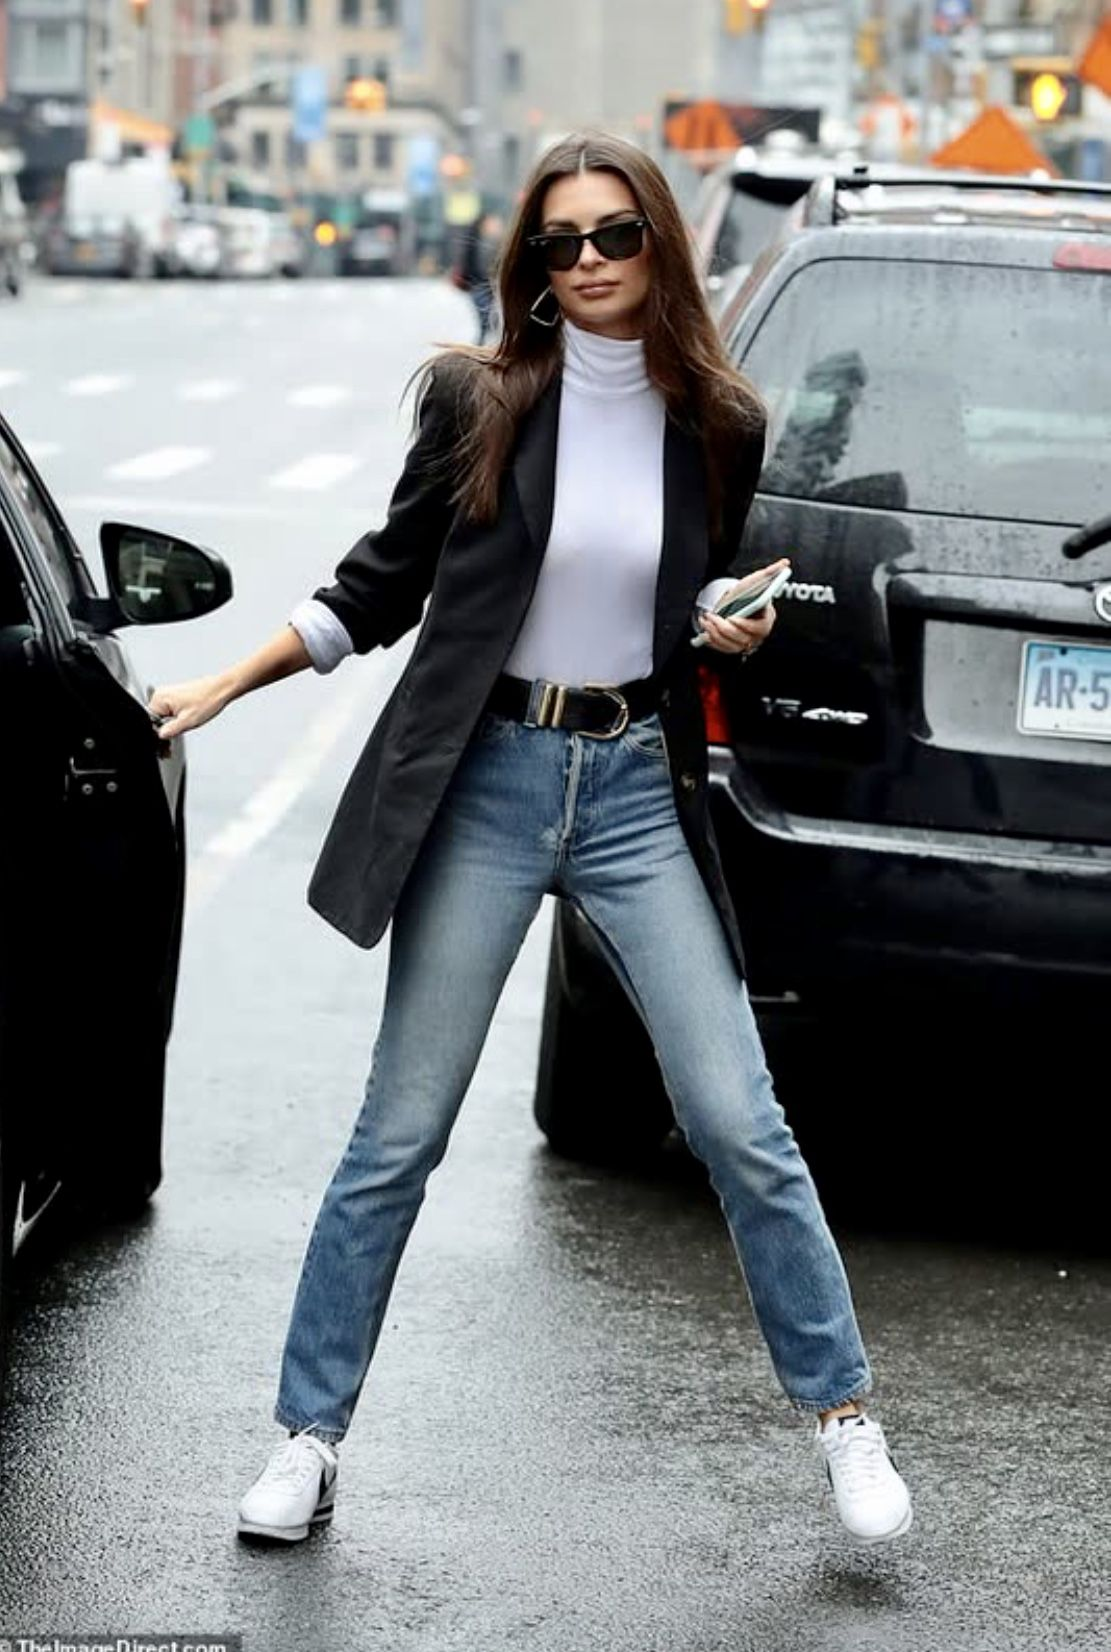 #style #styleblogger #styleinspiration #ootdfashion #ootd #outfits #casualstyle #emrata